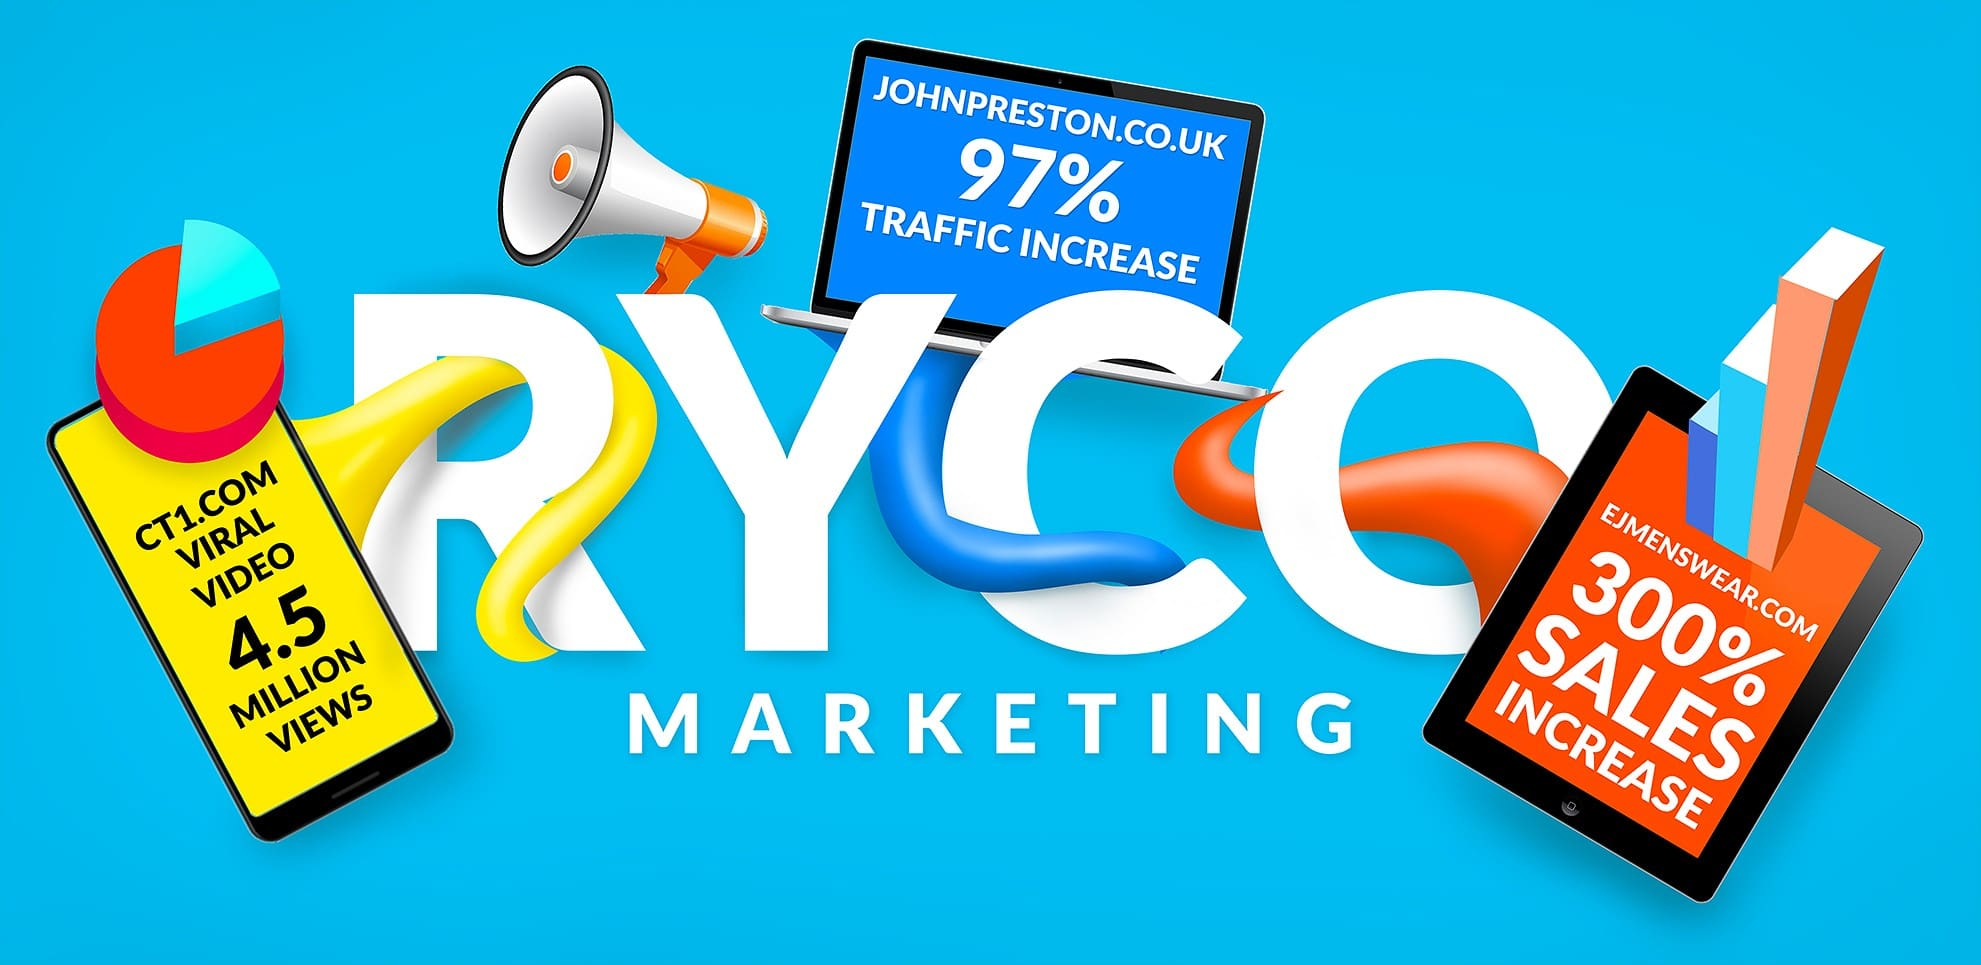 digital agency ryco marketing belfast newry